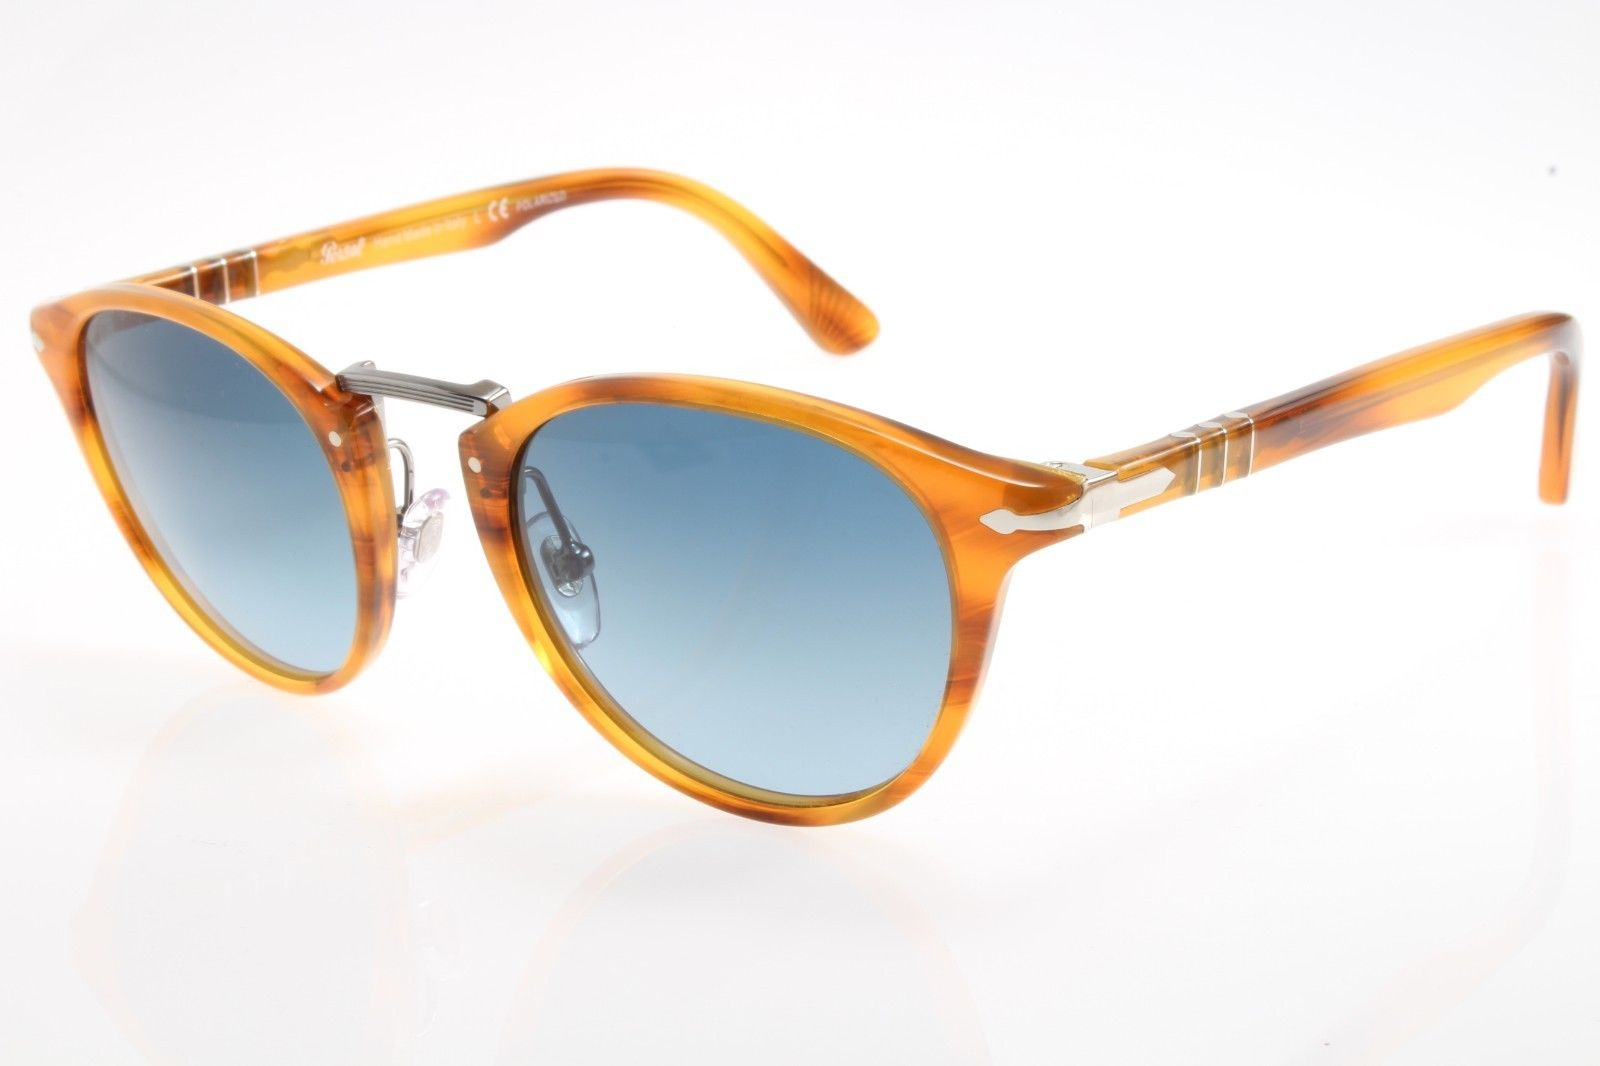 1f255d34c1e72 New authentic sunglasses Persol Typewriter 3108S 960 S3 49mm Striped ...